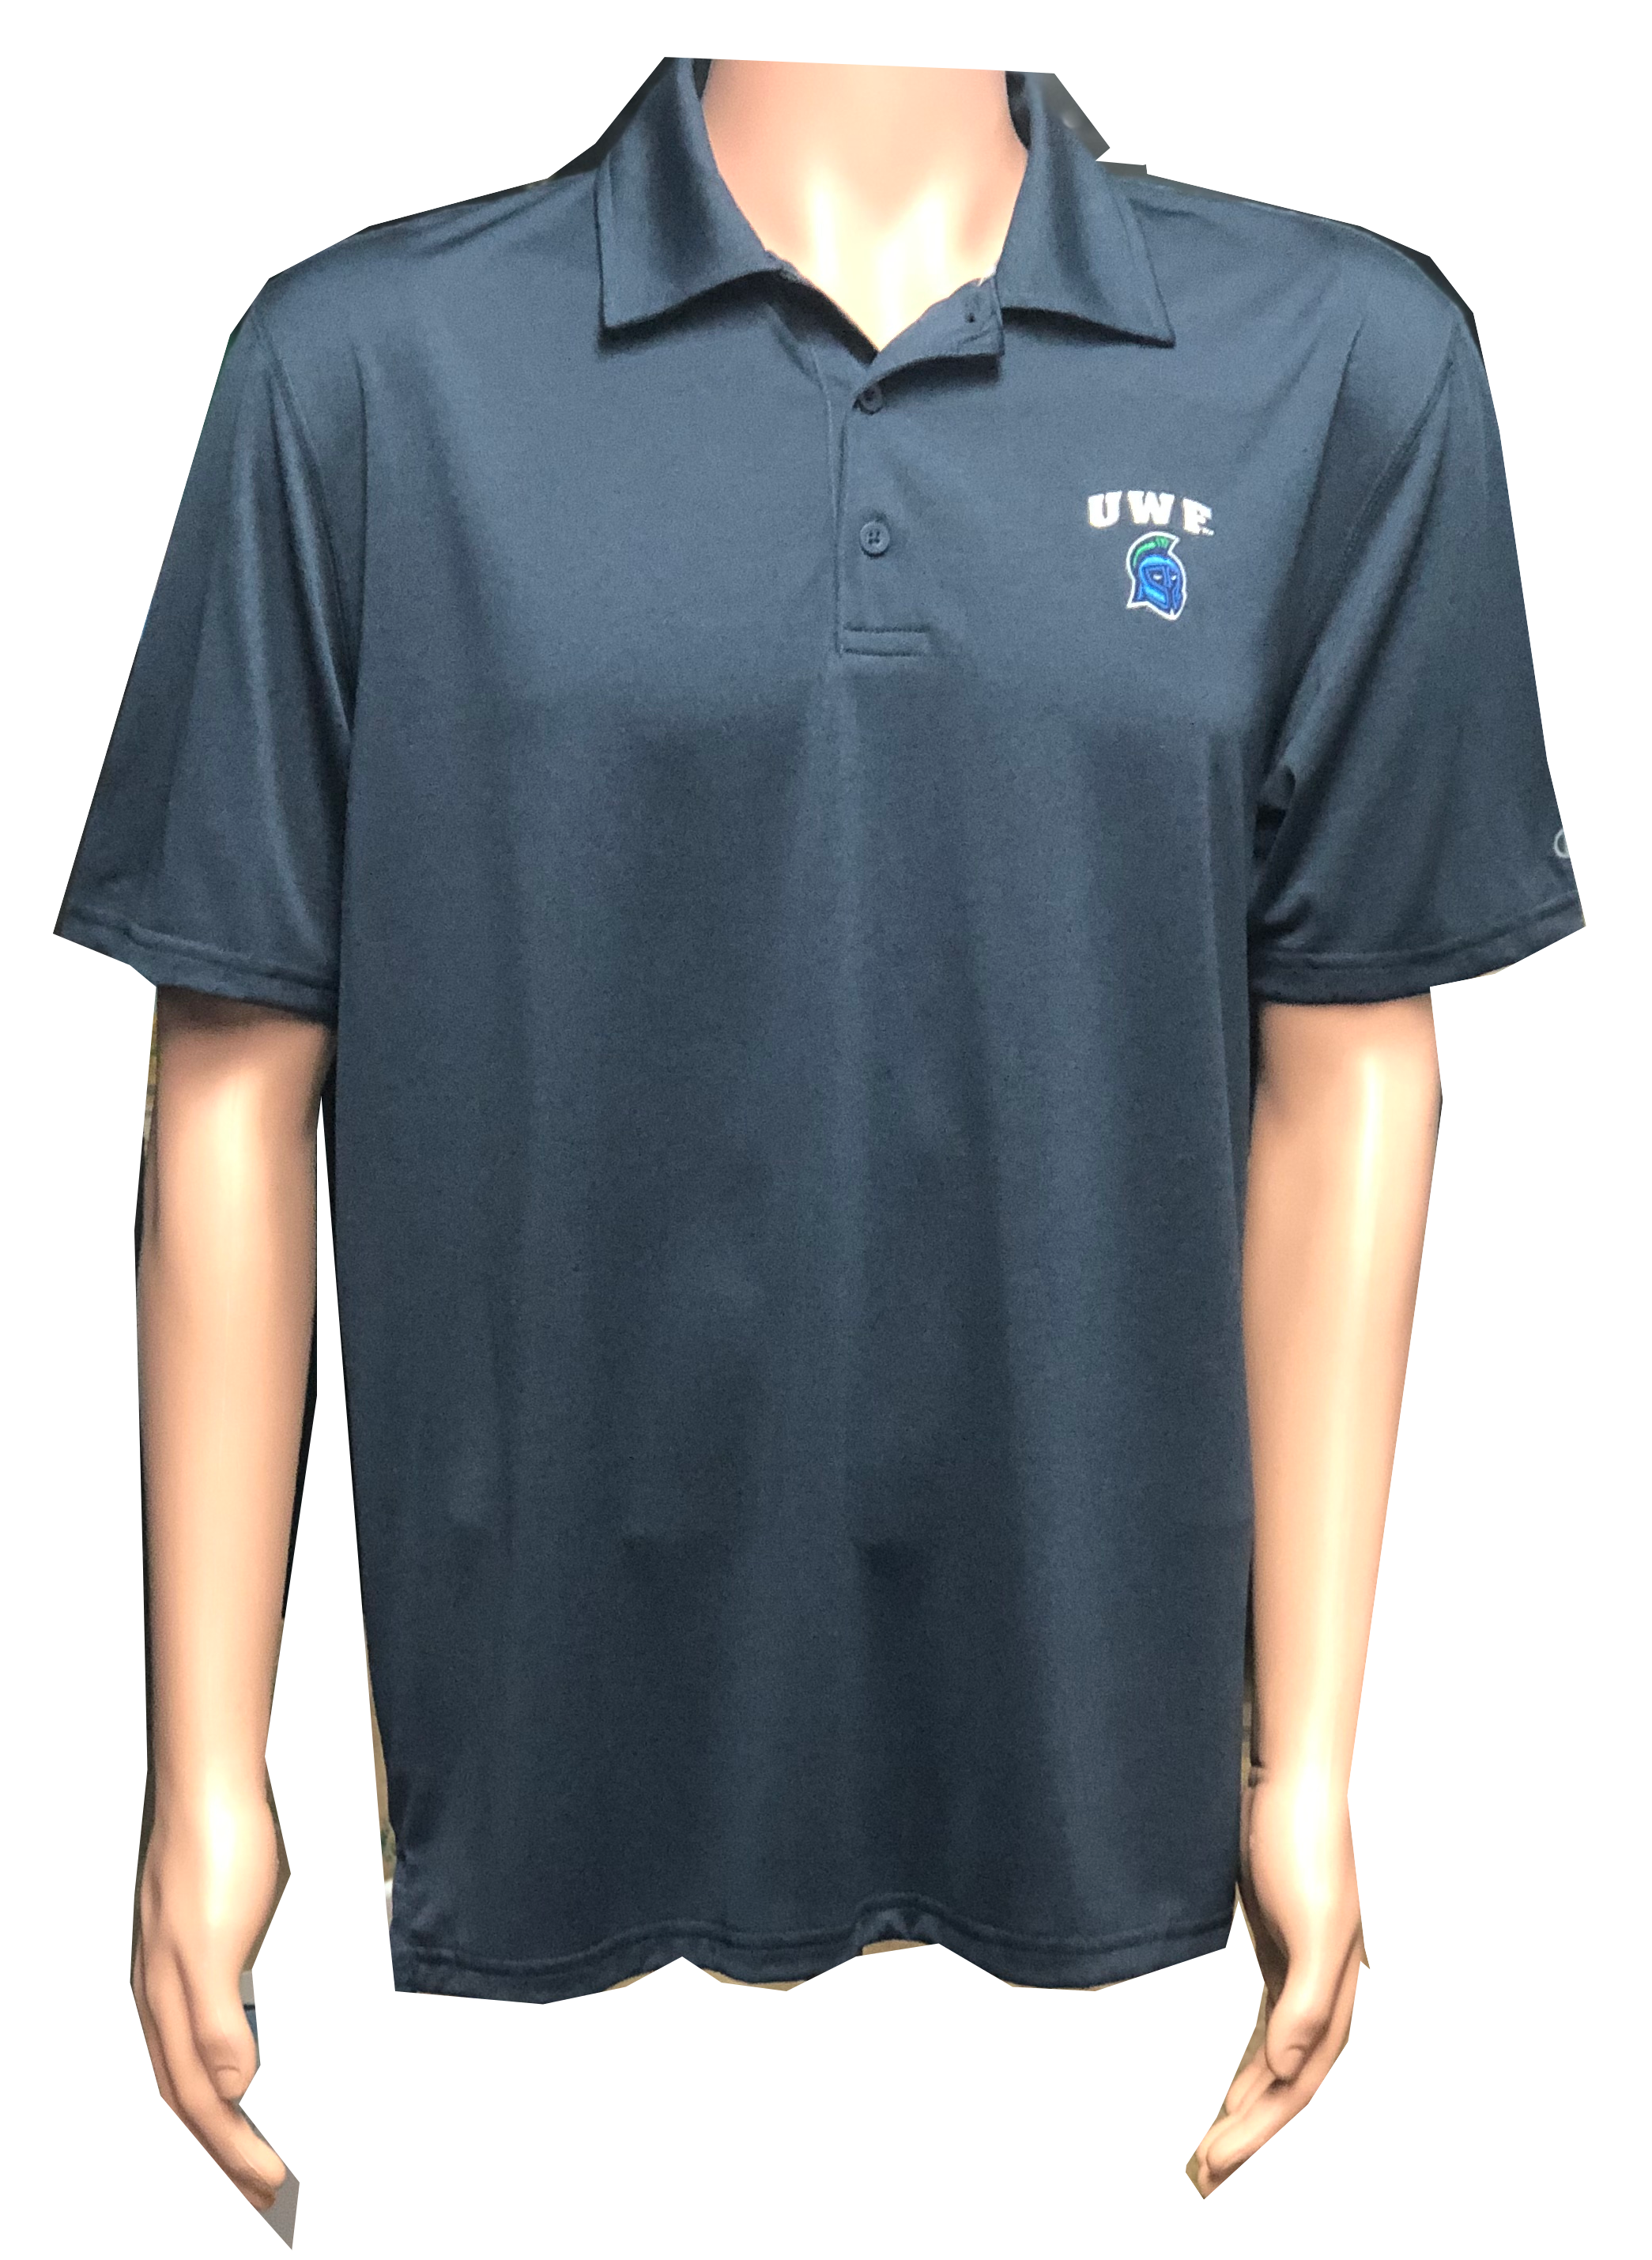 UWF ARGOS HEAD POLO